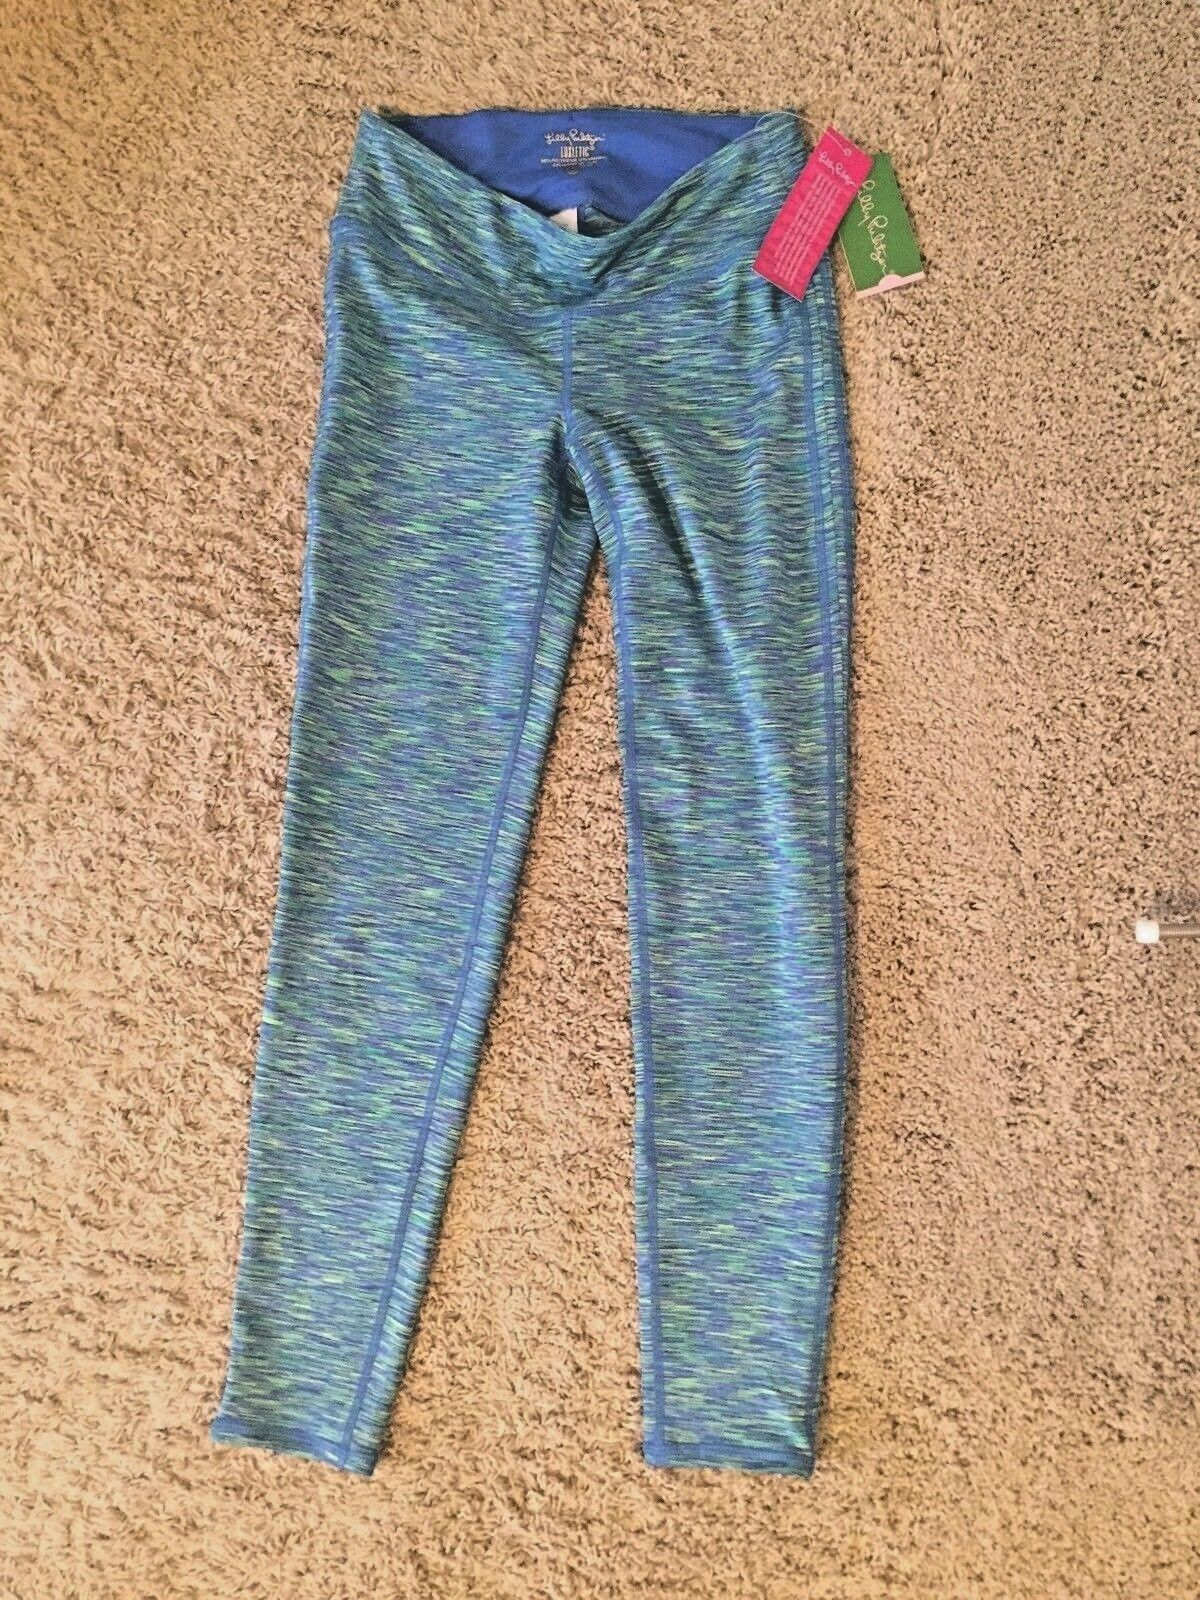 NWT Lilly Pulitzer Weekender Leggings Space Dye bluee Small S